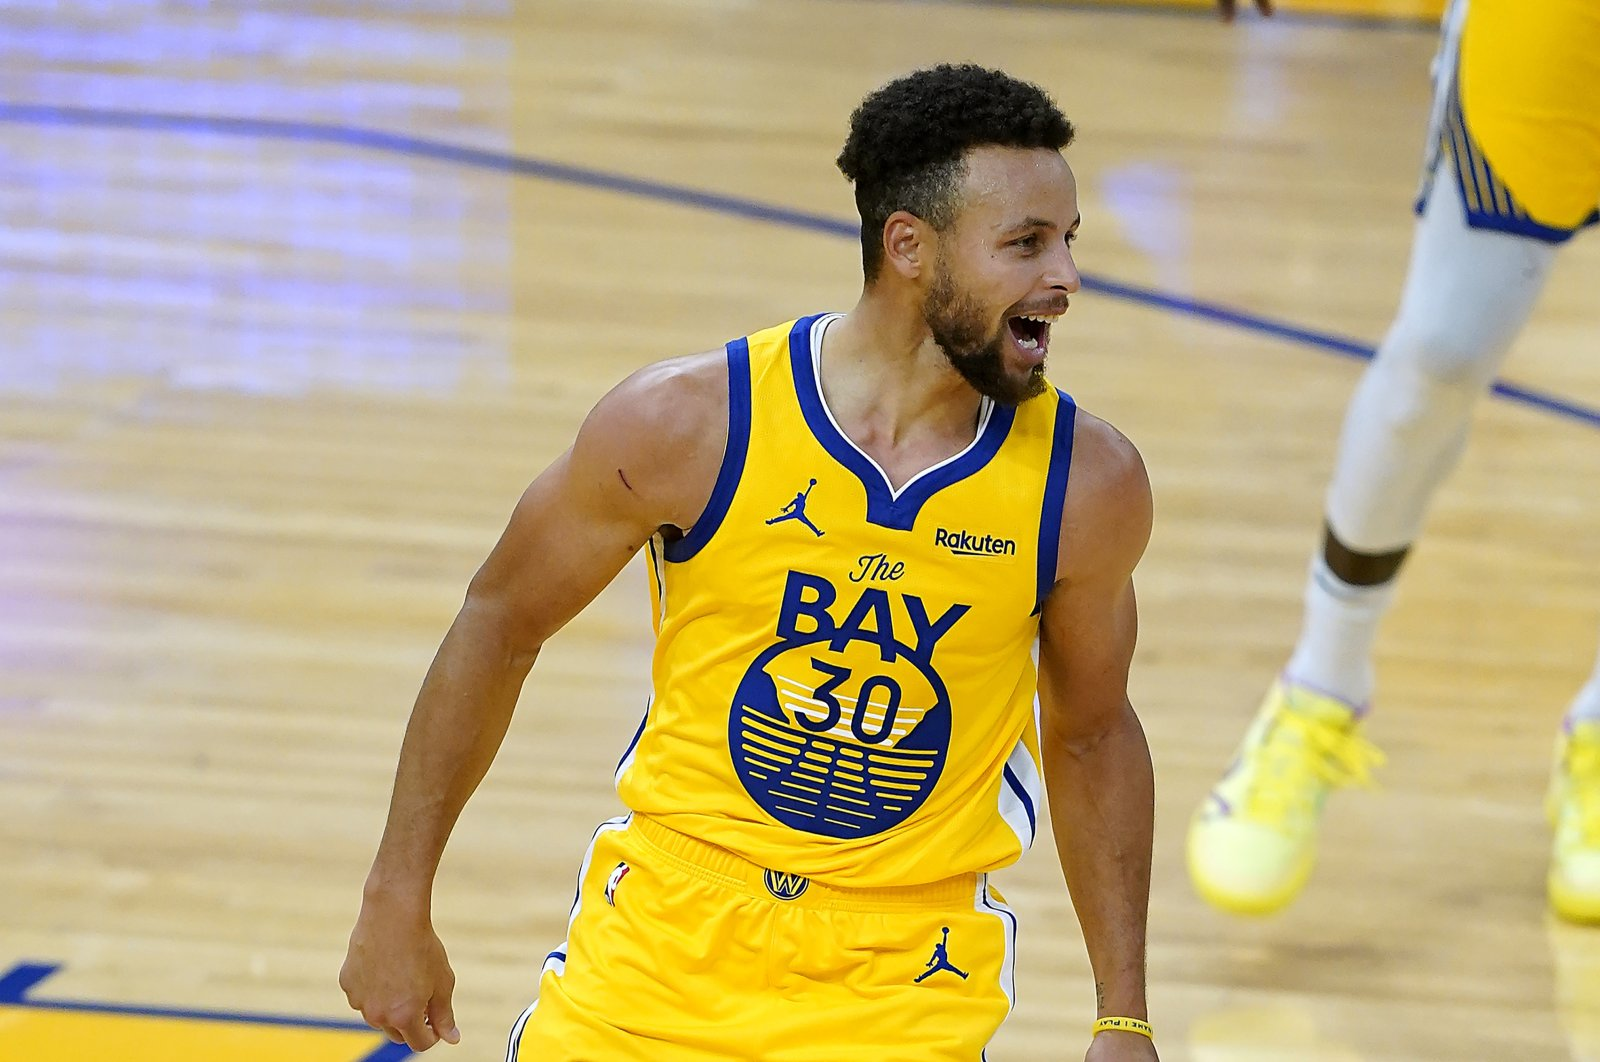 Golden State Warriors' Stephen Curry reacts after scoring during an NBA game against the Portland Trail Blazers, in San Francisco, California, U.S., Jan. 3, 2021. (AP Photo)